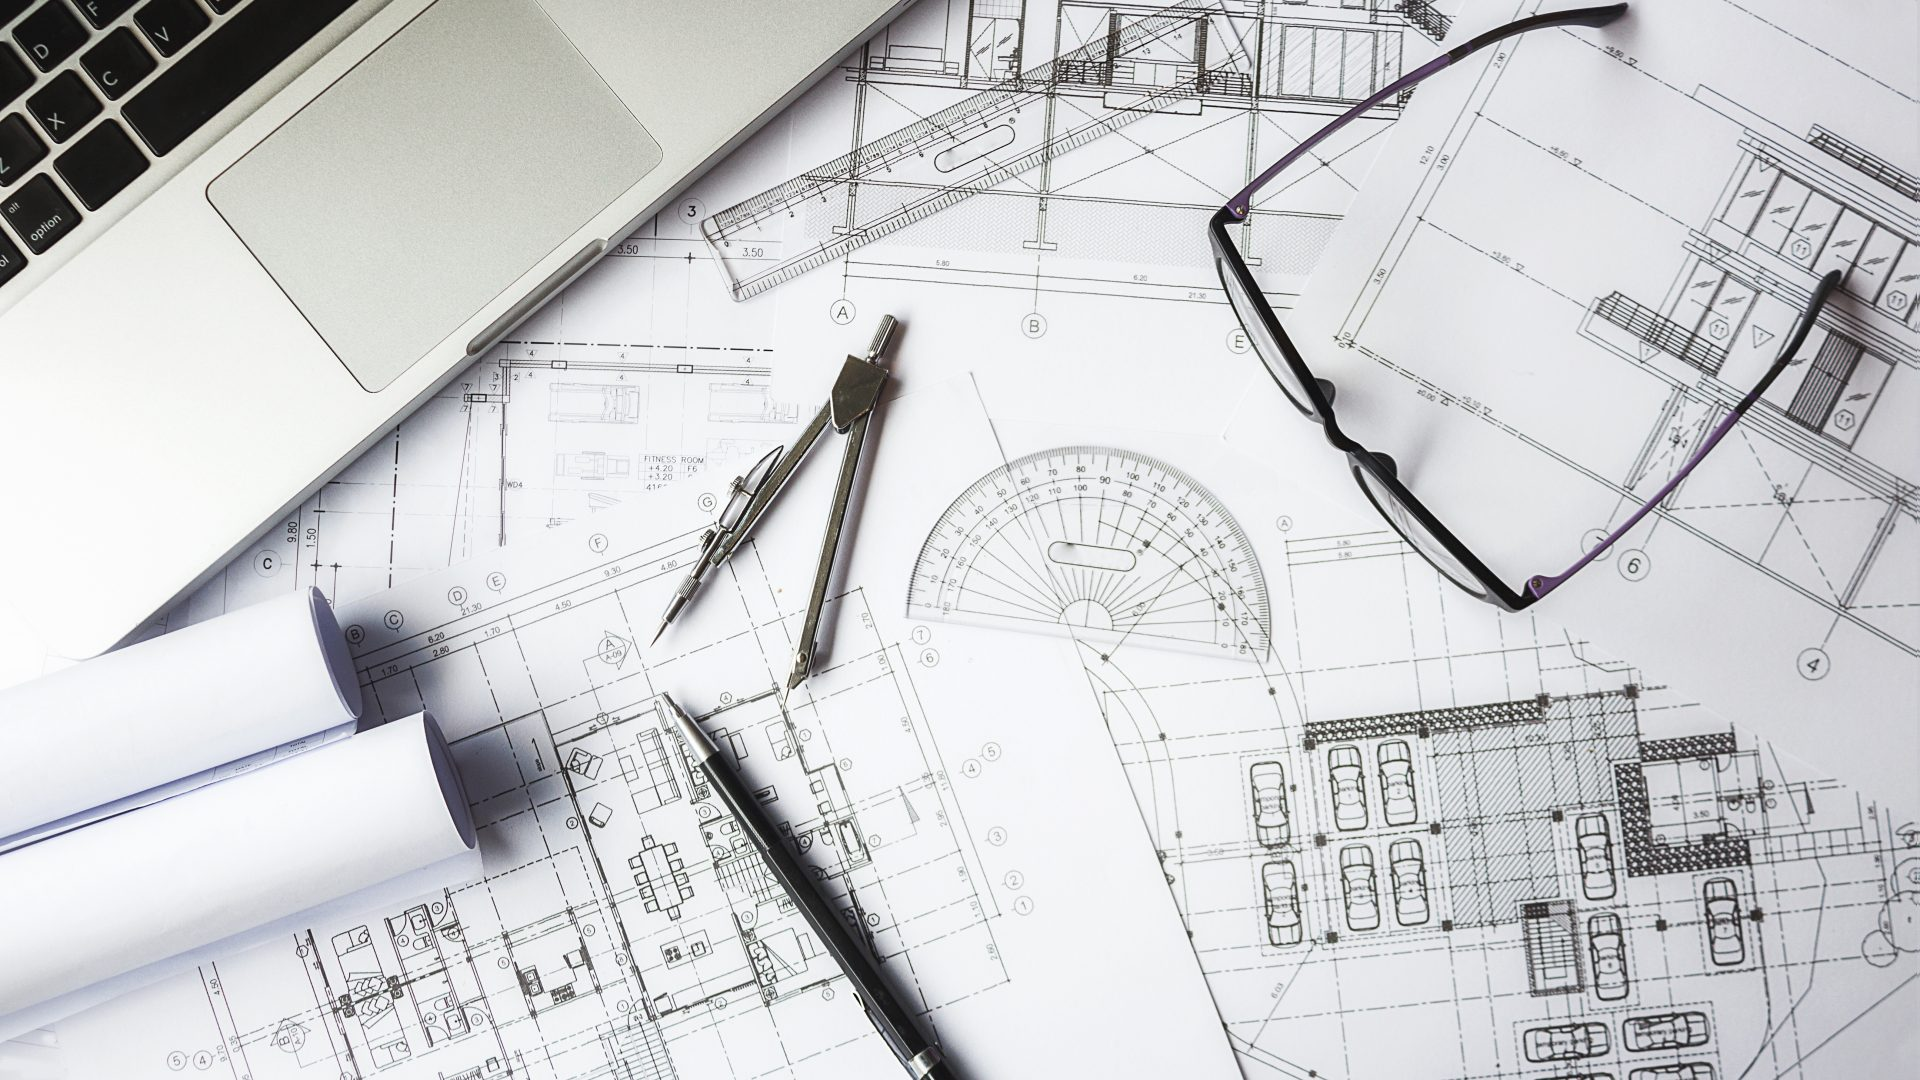 Printing drawings to scale - What you need to know.